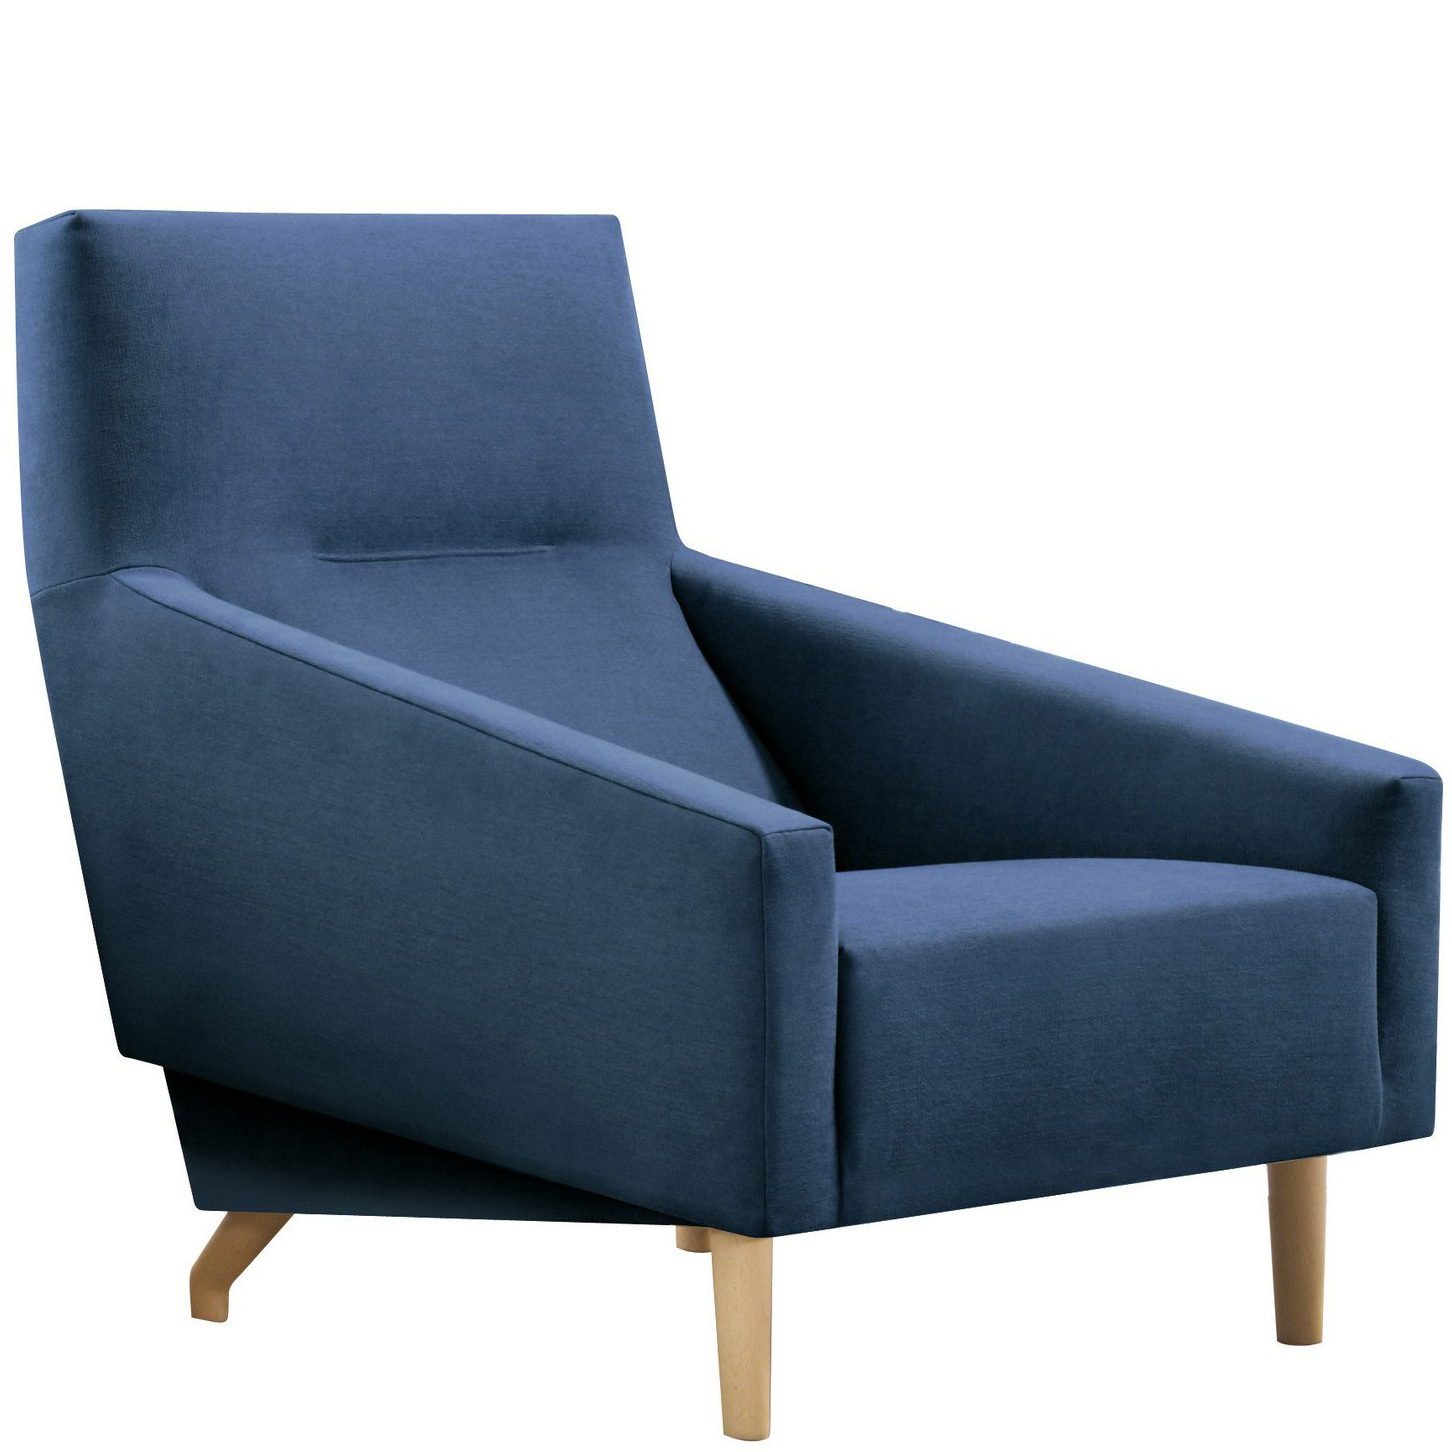 Blue hotel lounge chair